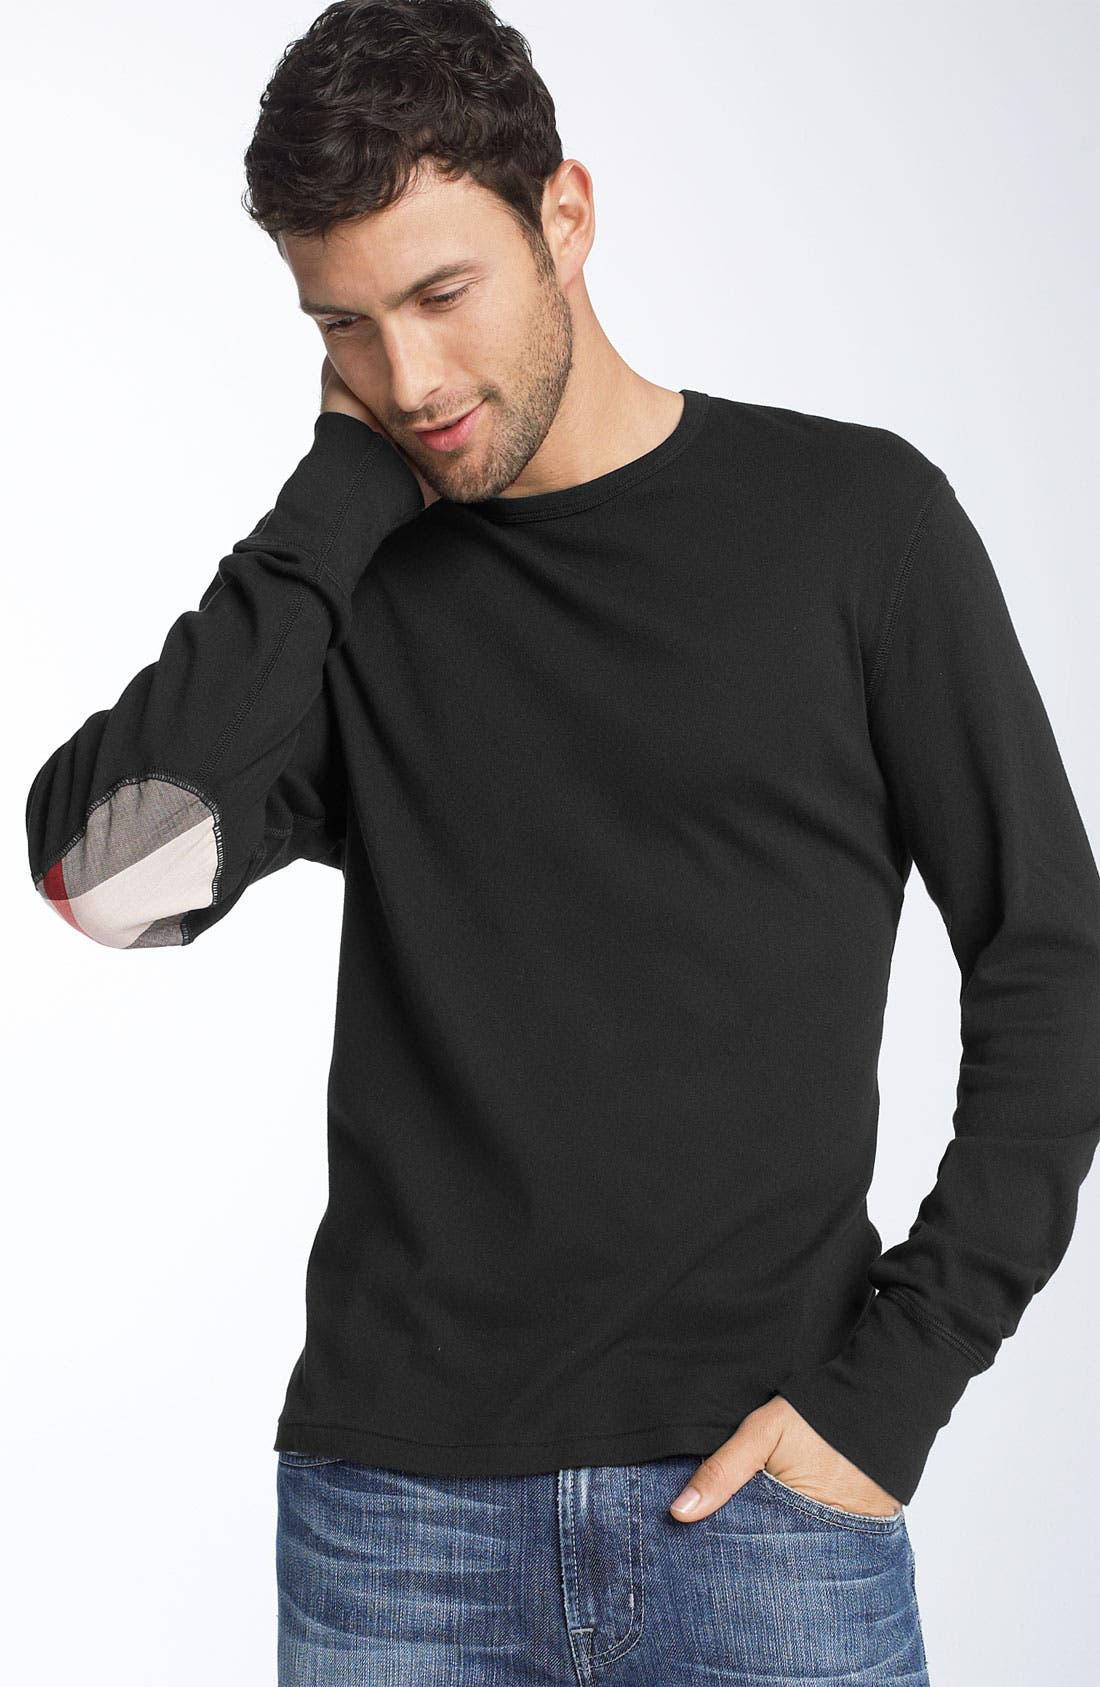 Alternate Image 1 Selected - Burberry Brit Trim Fit Elbow Patch T-Shirt